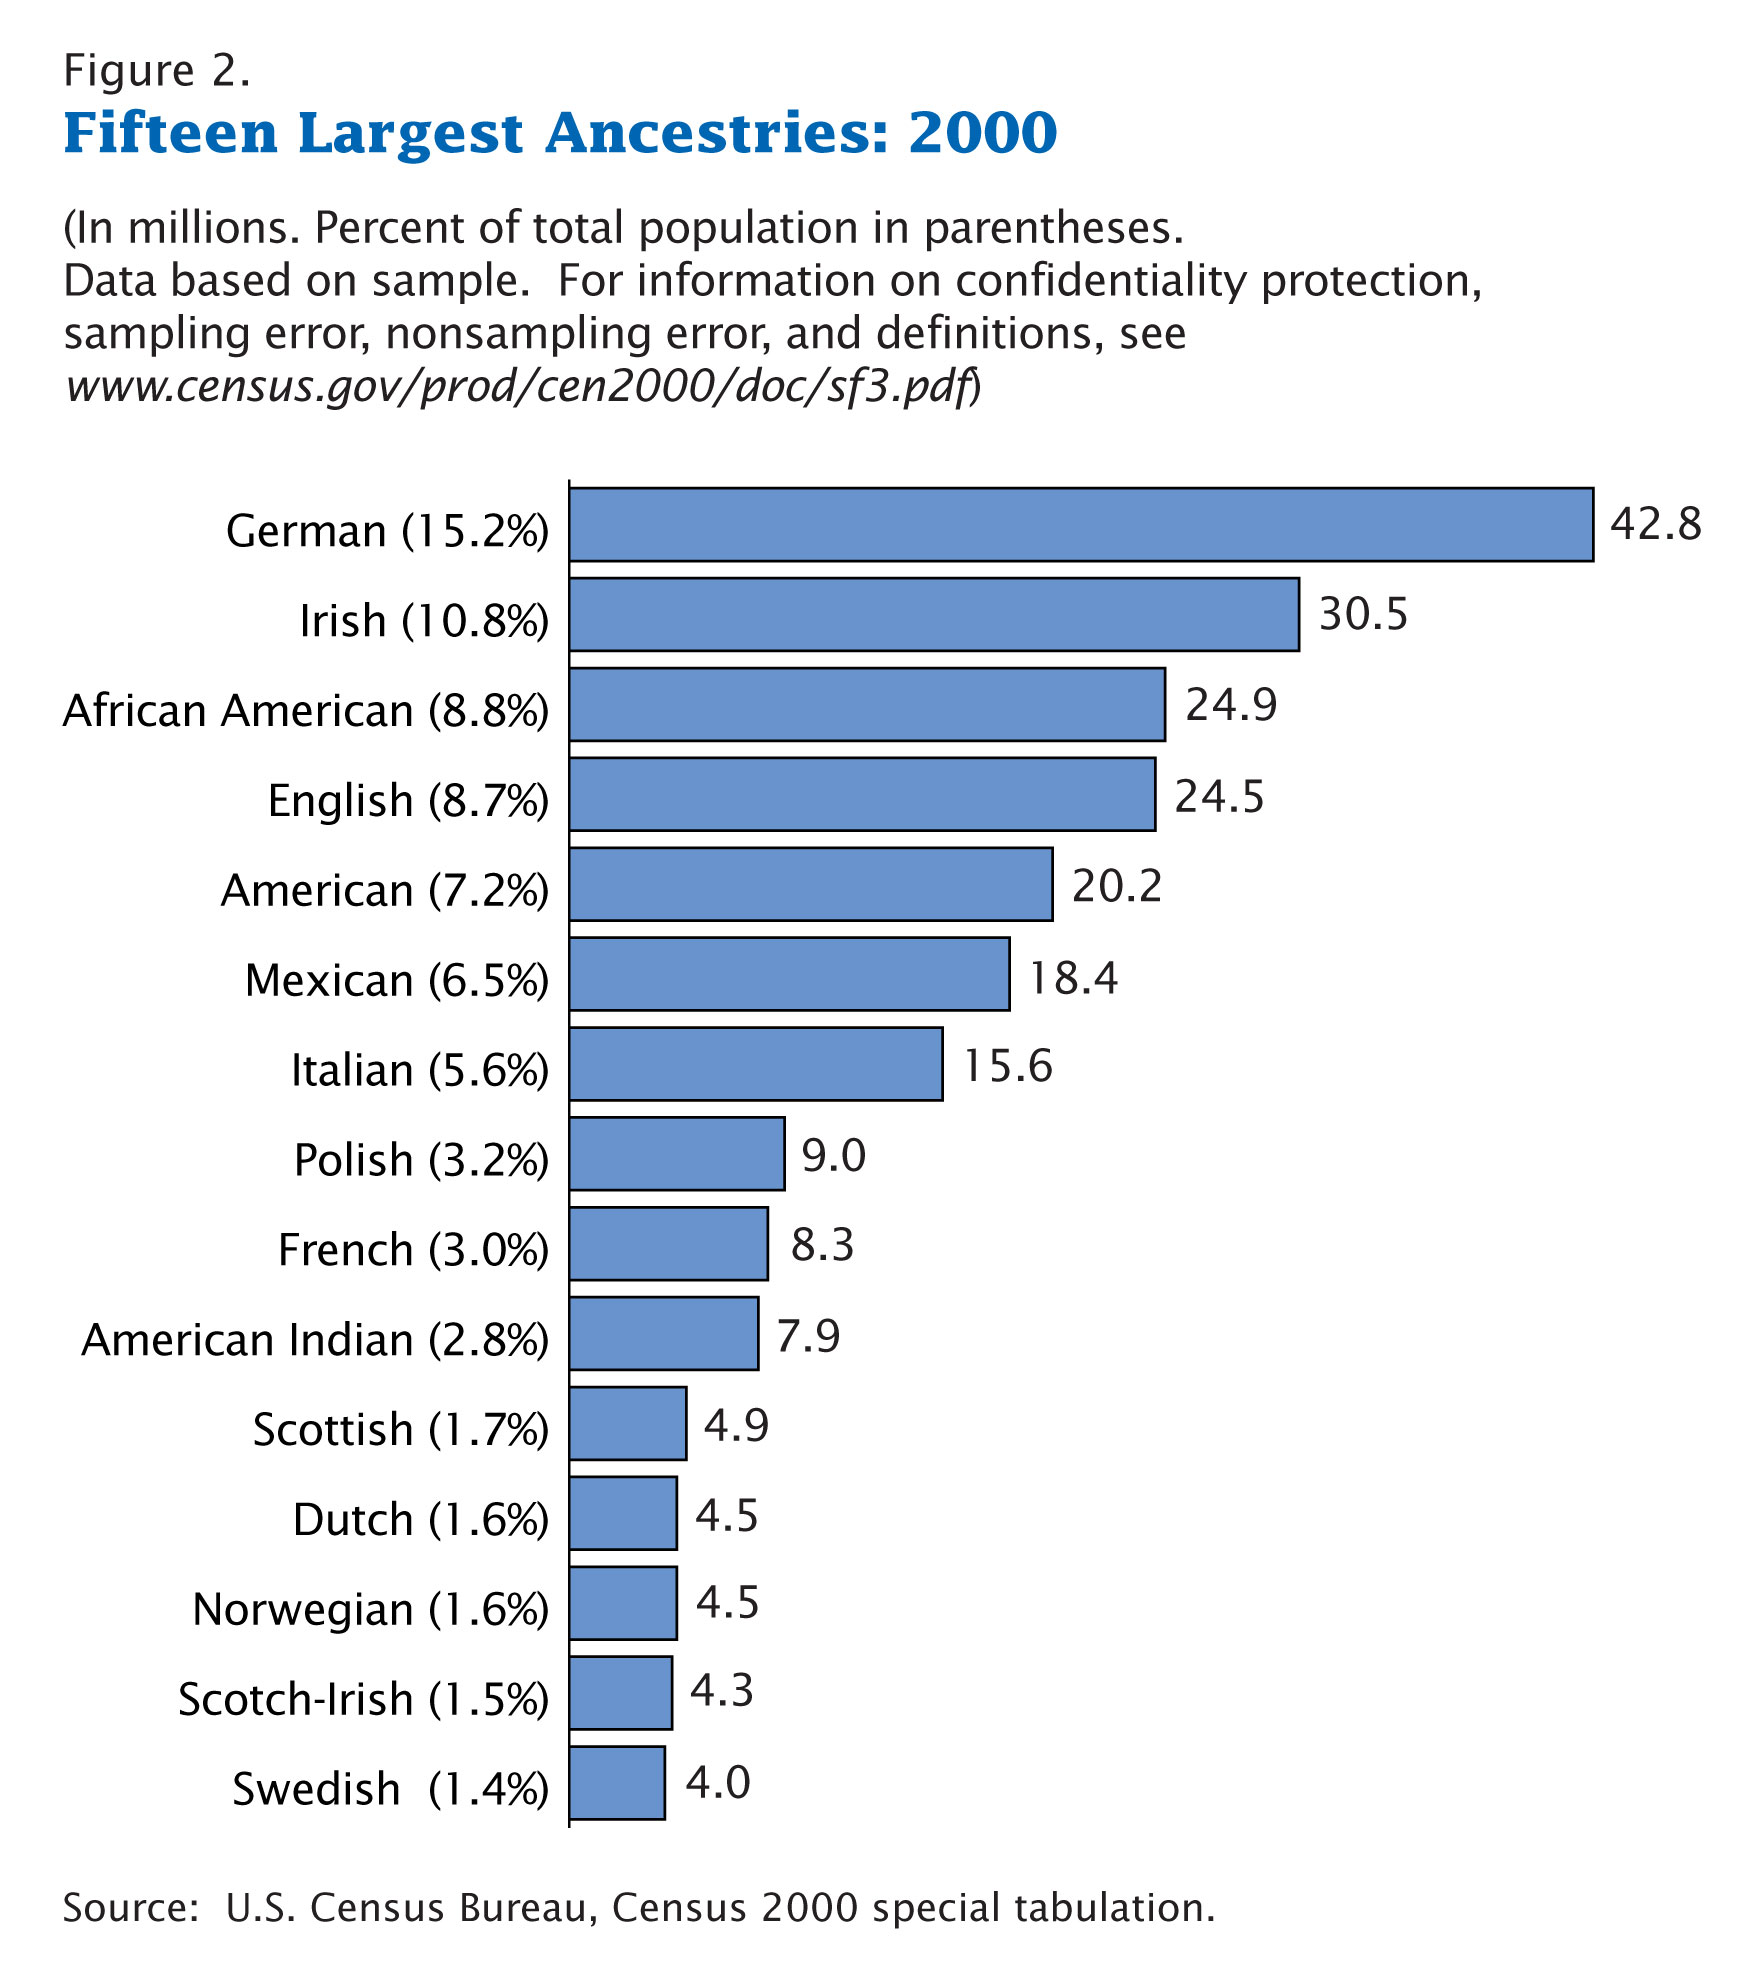 https://i1.wp.com/upload.wikimedia.org/wikipedia/commons/4/44/Census-2000-Data-Top-US-Ancestries.jpg